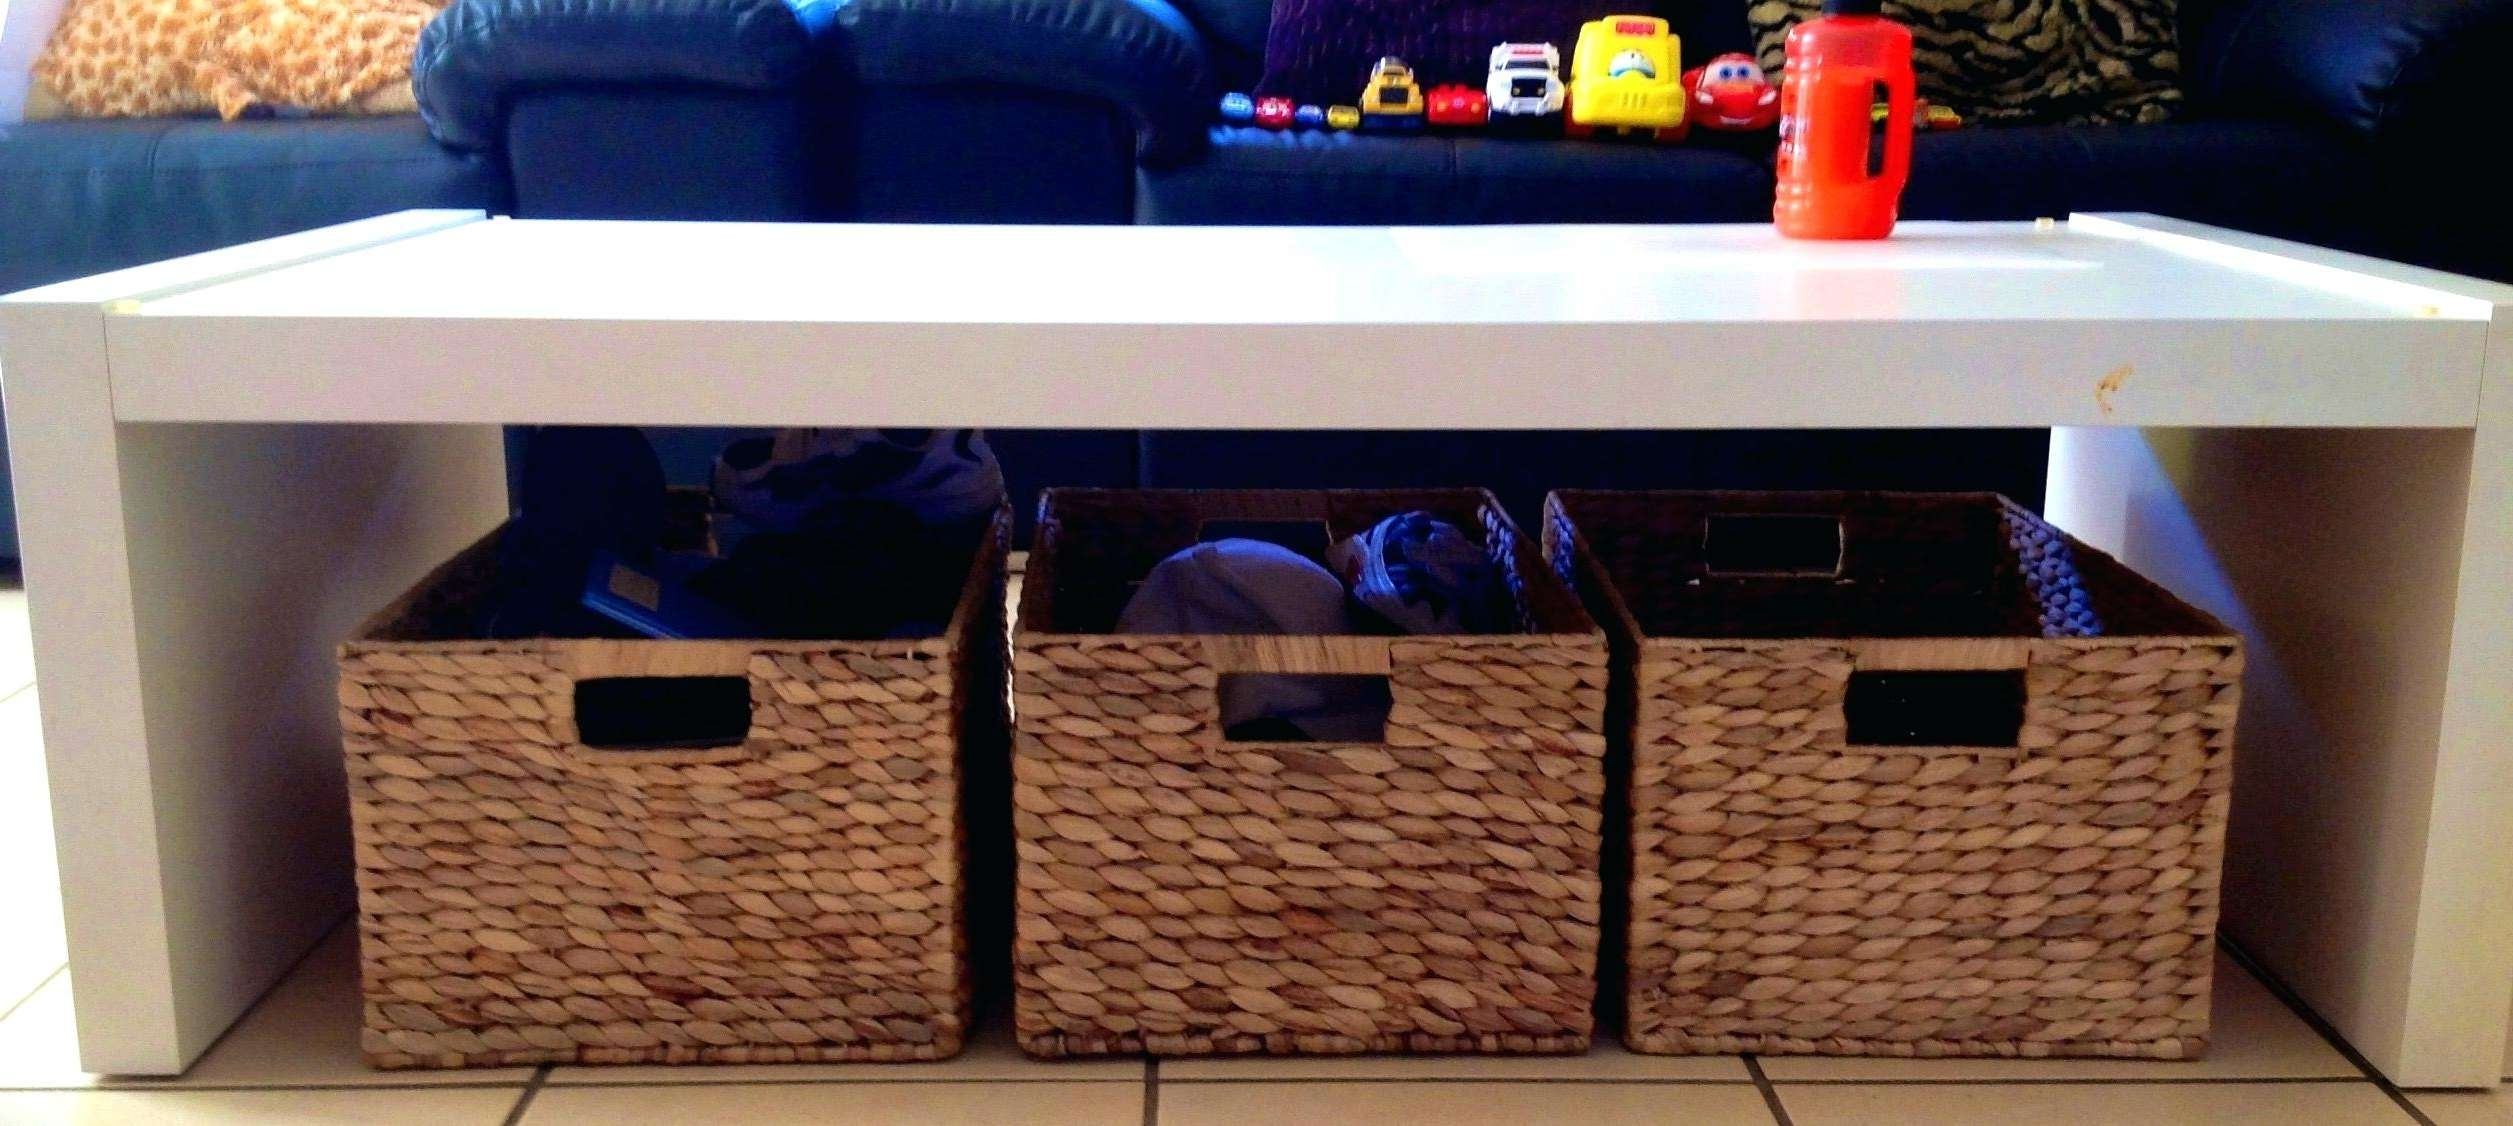 Well Liked Coffee Tables With Baskets Underneath Pertaining To Coffee Table: Coffee Table With Baskets (View 19 of 20)